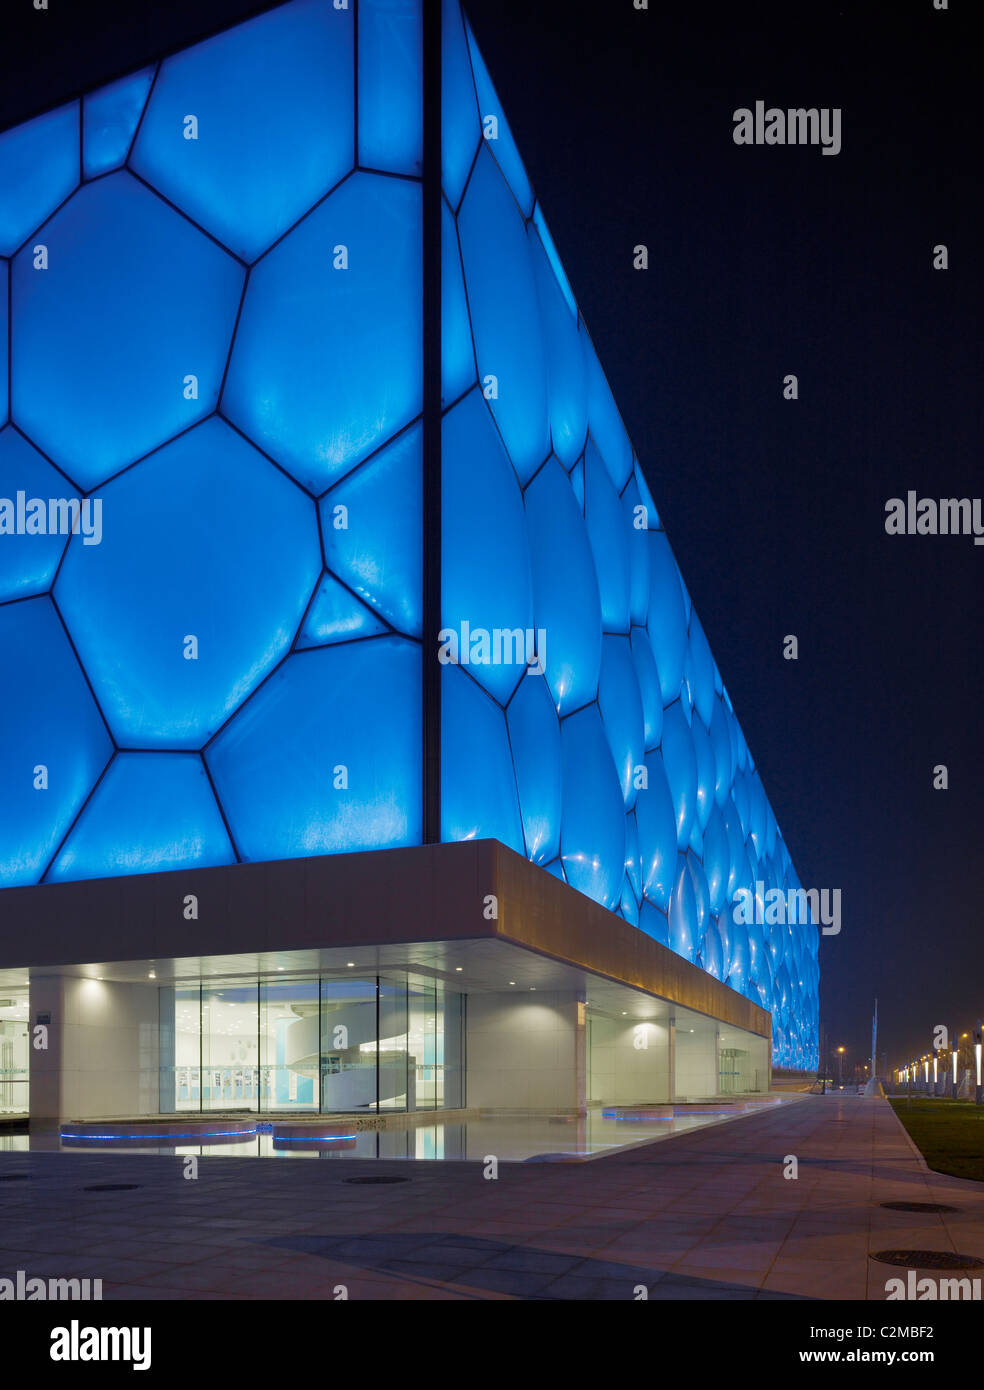 National Aquatics Center, Beijing, China - The Water Cube. PTW Architects, Arup, CSCEC and CCDI. Stock Photo